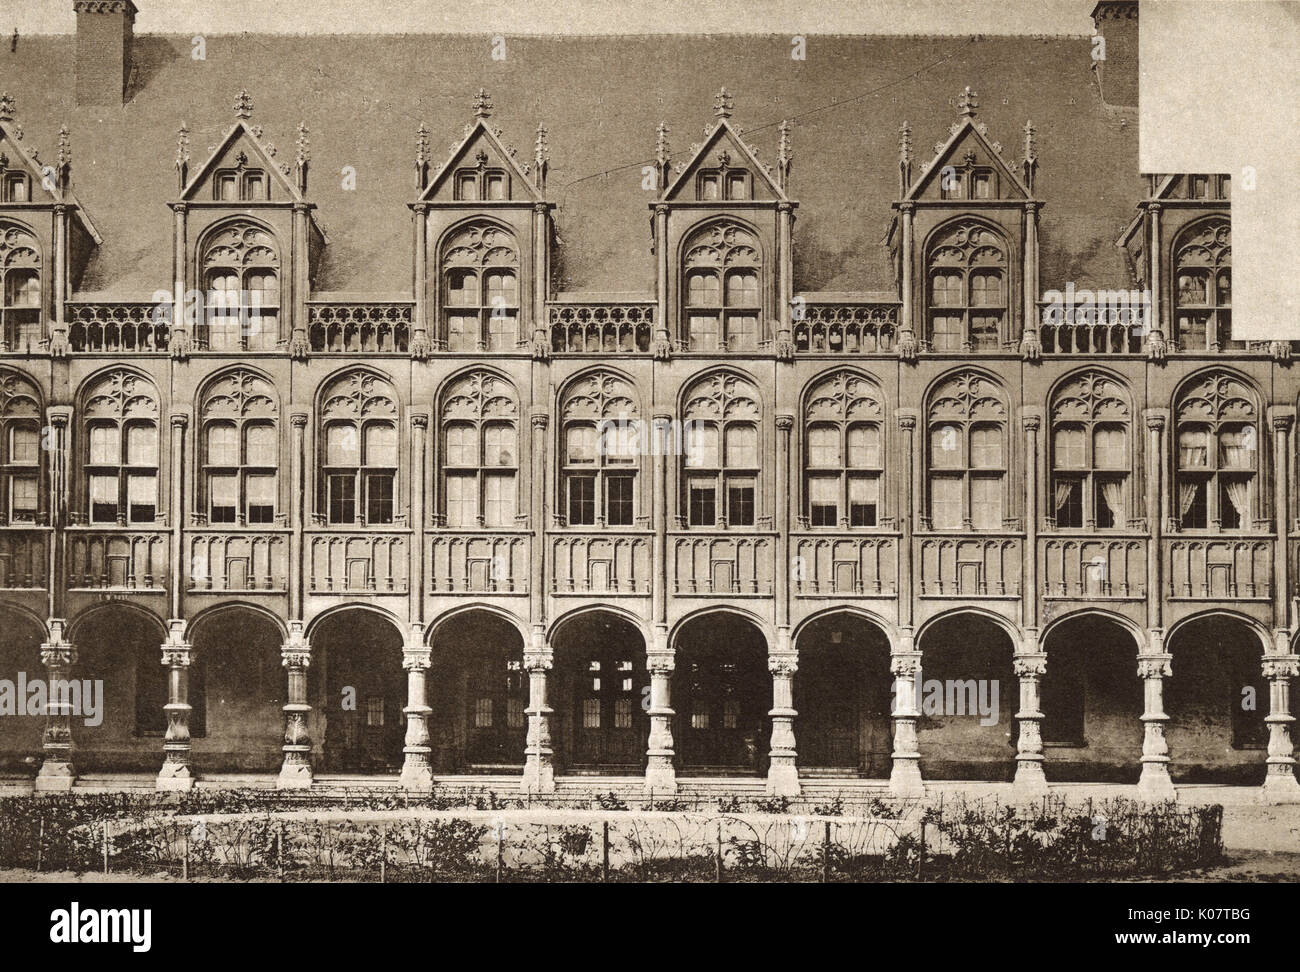 Palais des Princes Eveques (Palace of the Prince-Bishops), Liege, Belgium, dating back to the 16th century.     - Stock Image